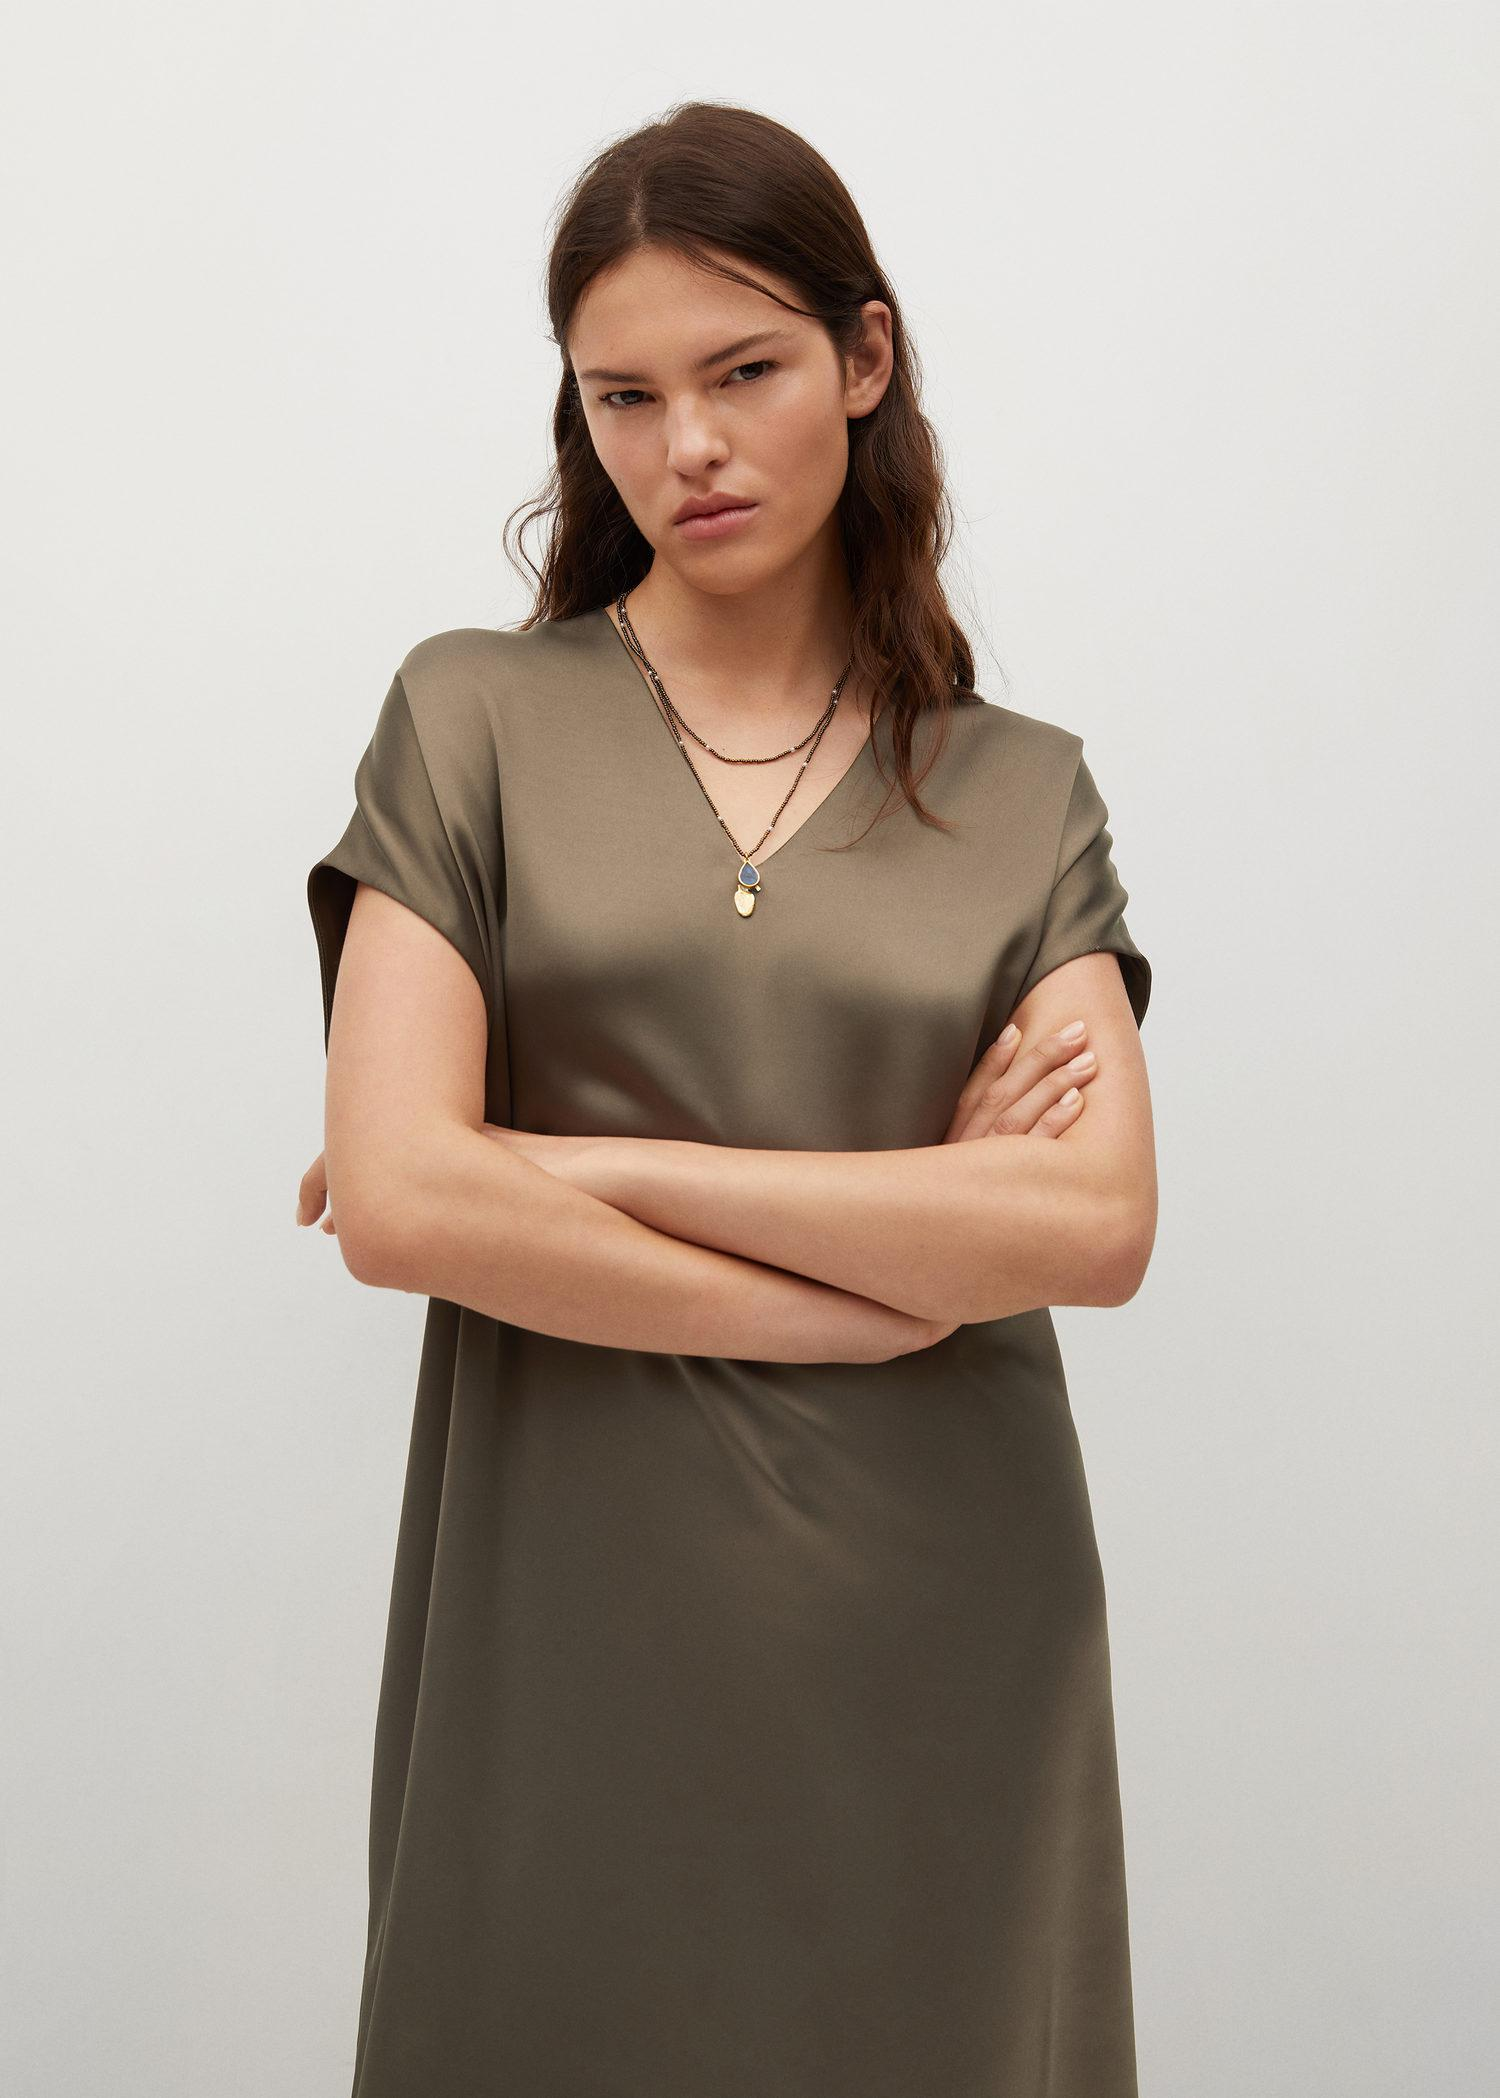 Flowy dress with openings